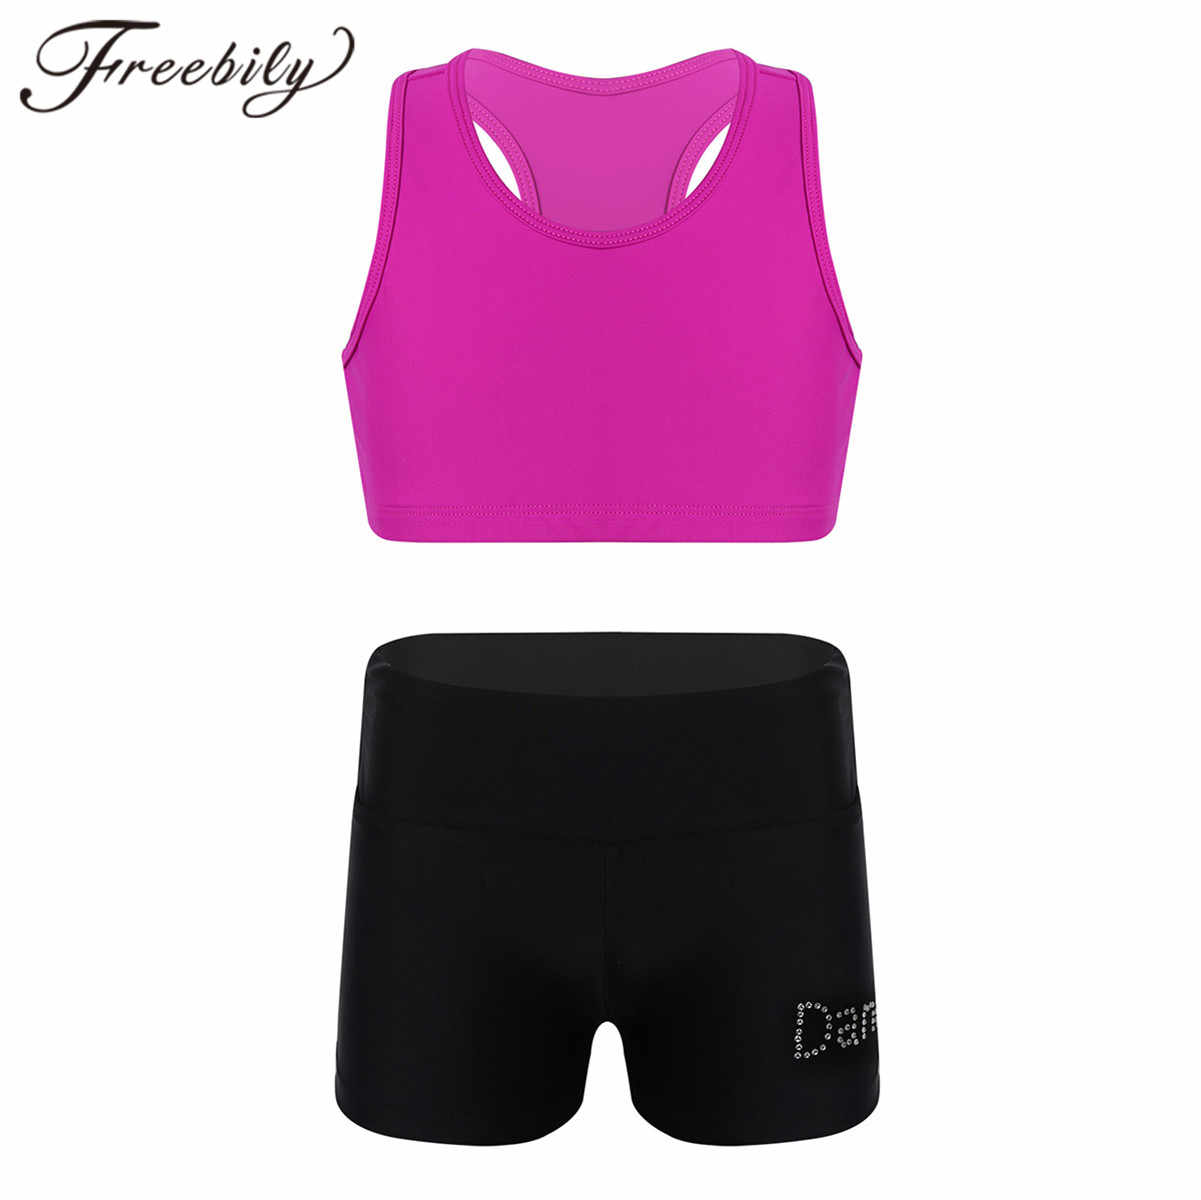 Freebily Kids Girls Workout Yoga Athletic Sweatsuits for Gymnastic Active Leggings Pants with Crop Top Sports Outfit